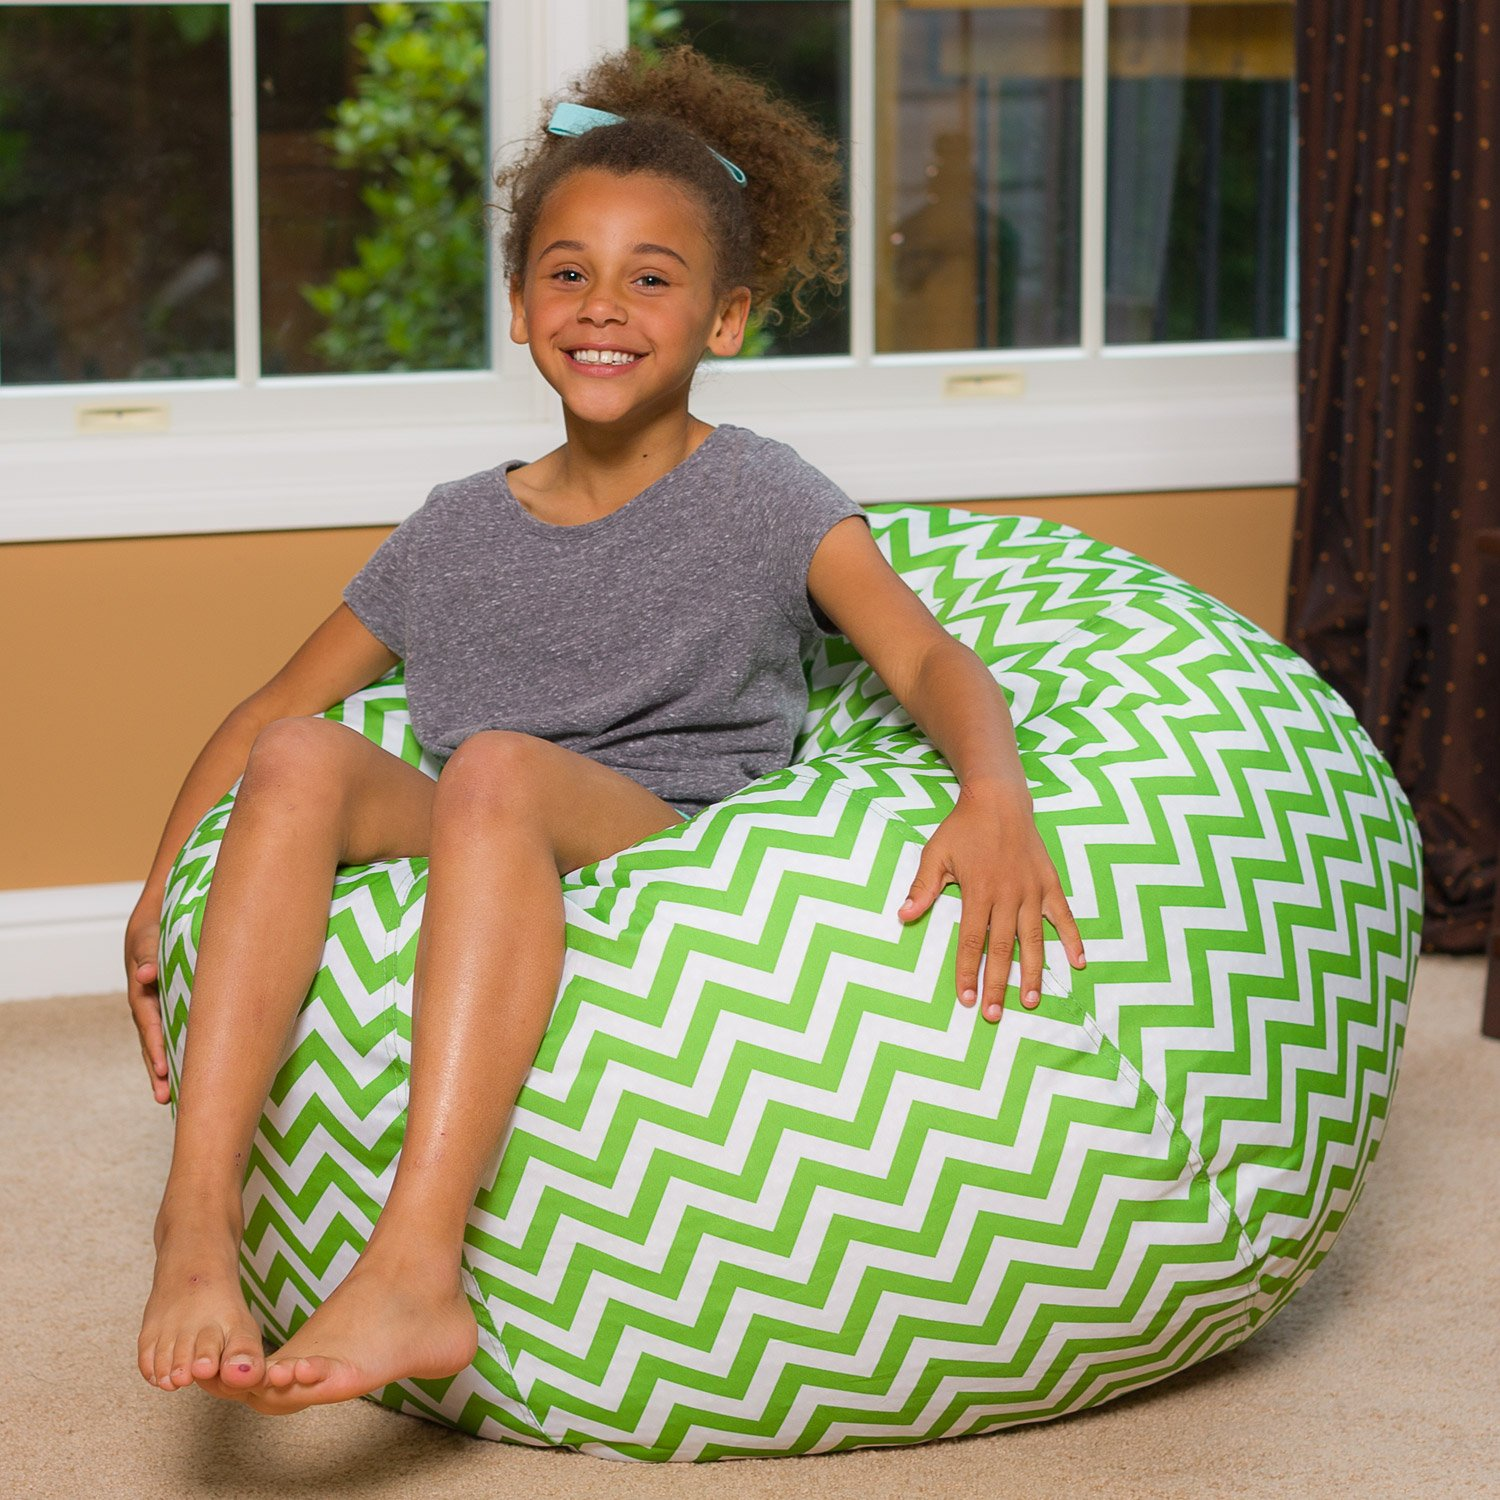 Big Comfy Bean Bag Chair: Posh Large Beanbag Chairs for Kids, Teens and Adults - Polyester Cloth Puff Sack Lounger Furniture for All Ages - 27 Inch - Chevron Green and White by Posh Beanbags (Image #3)